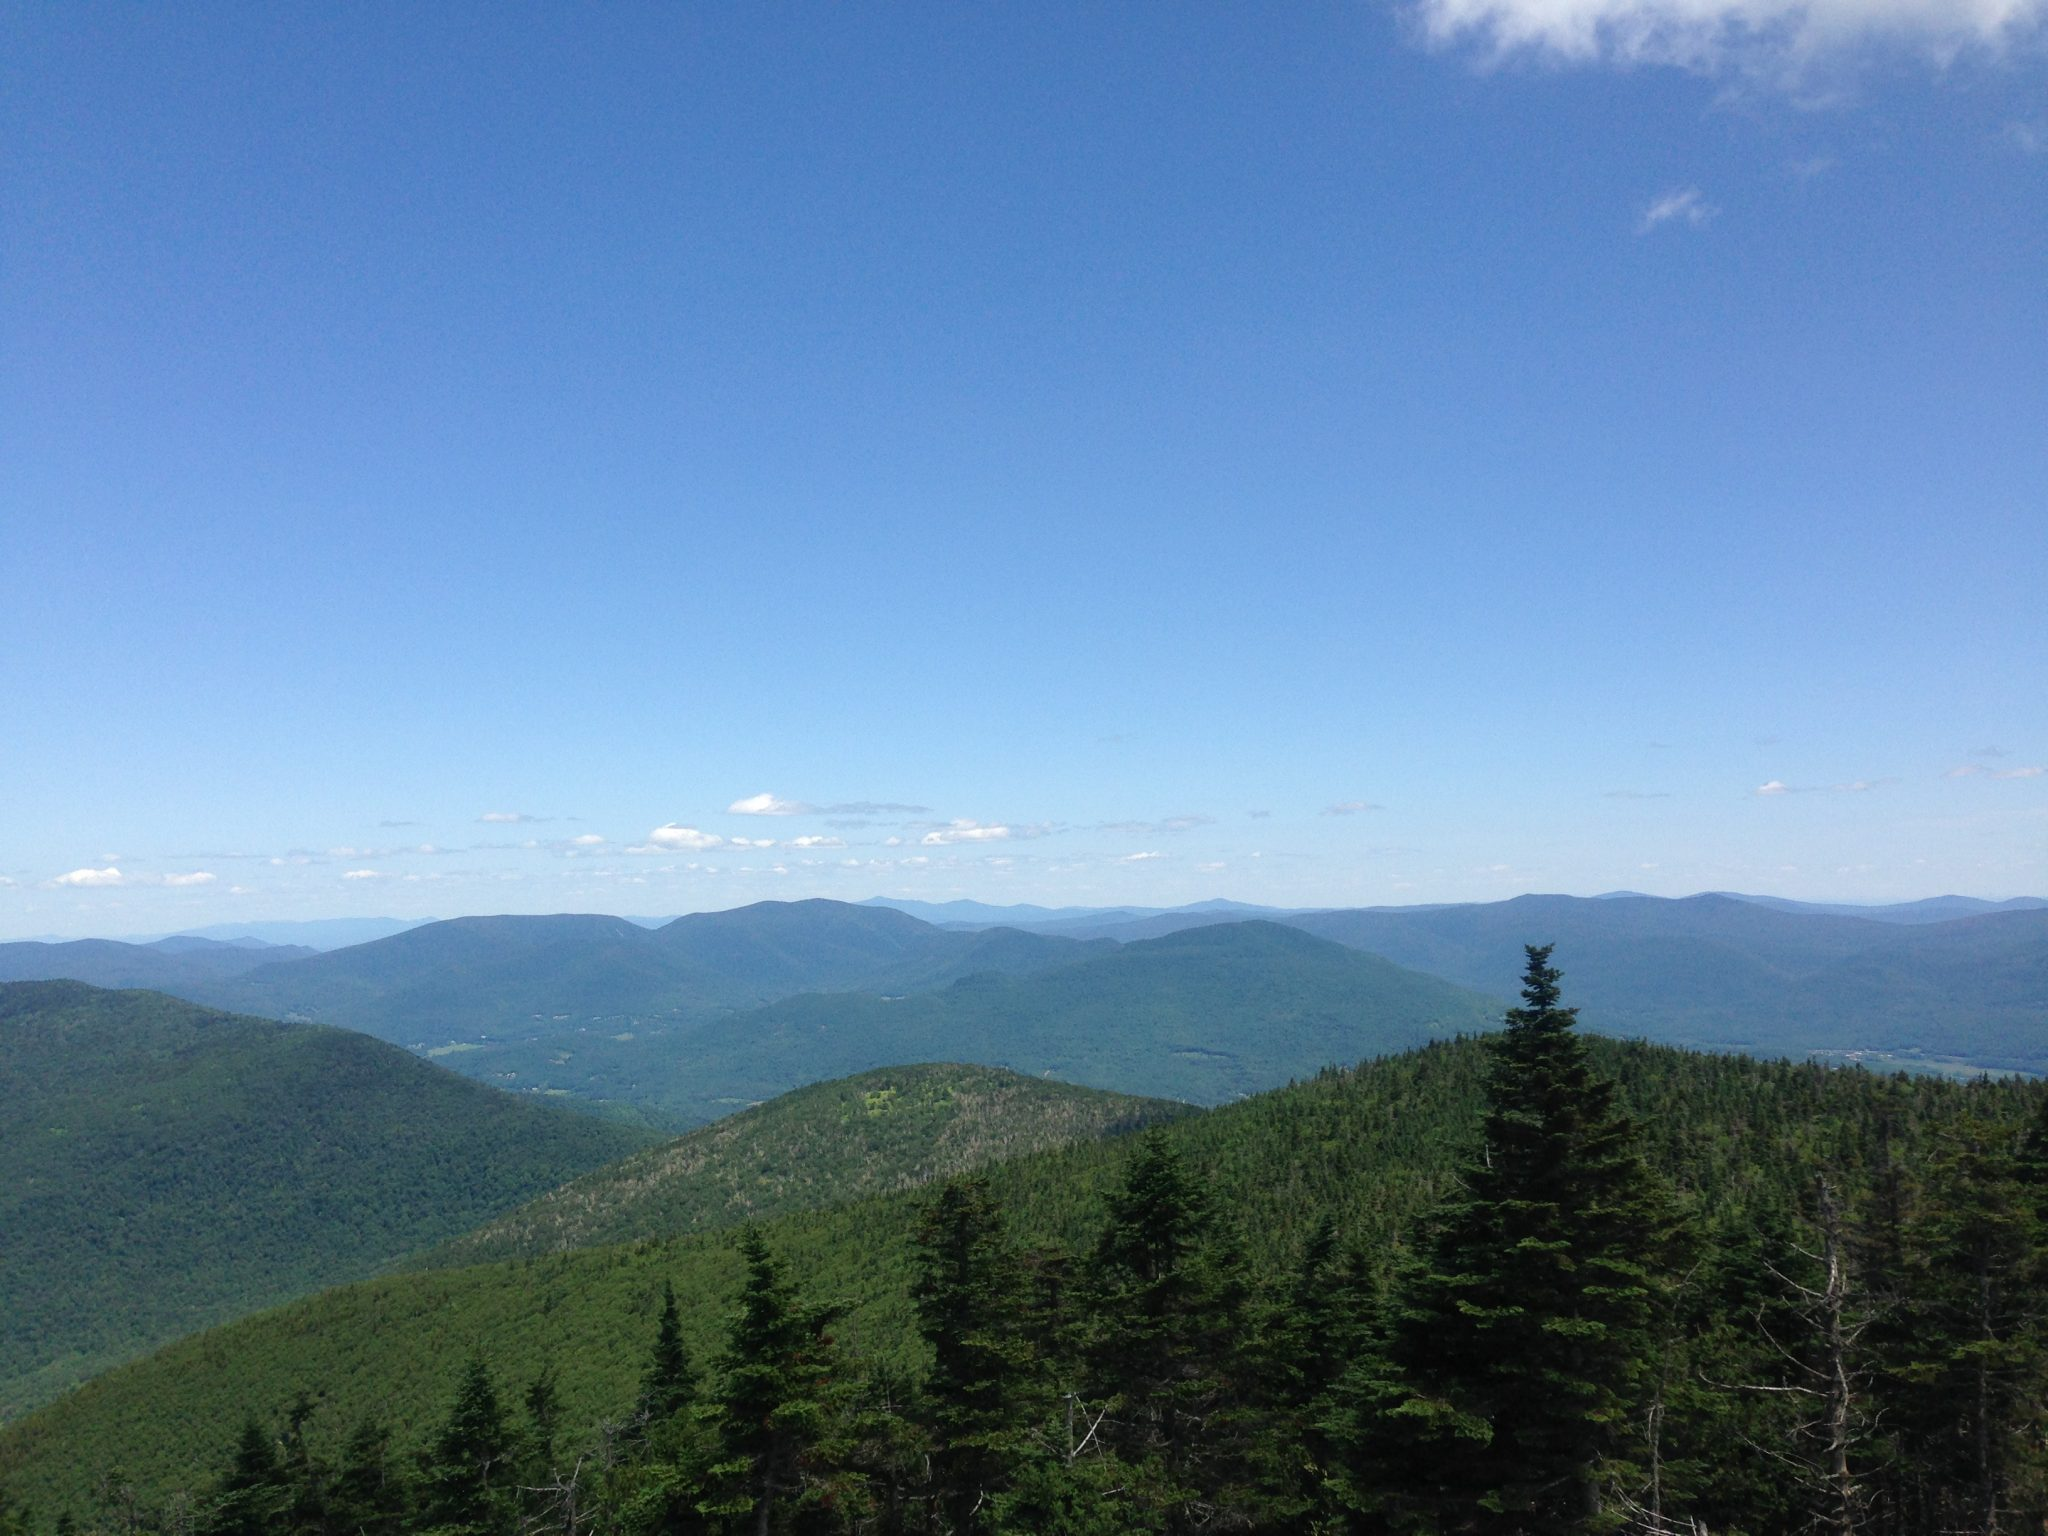 From Mt Equinox